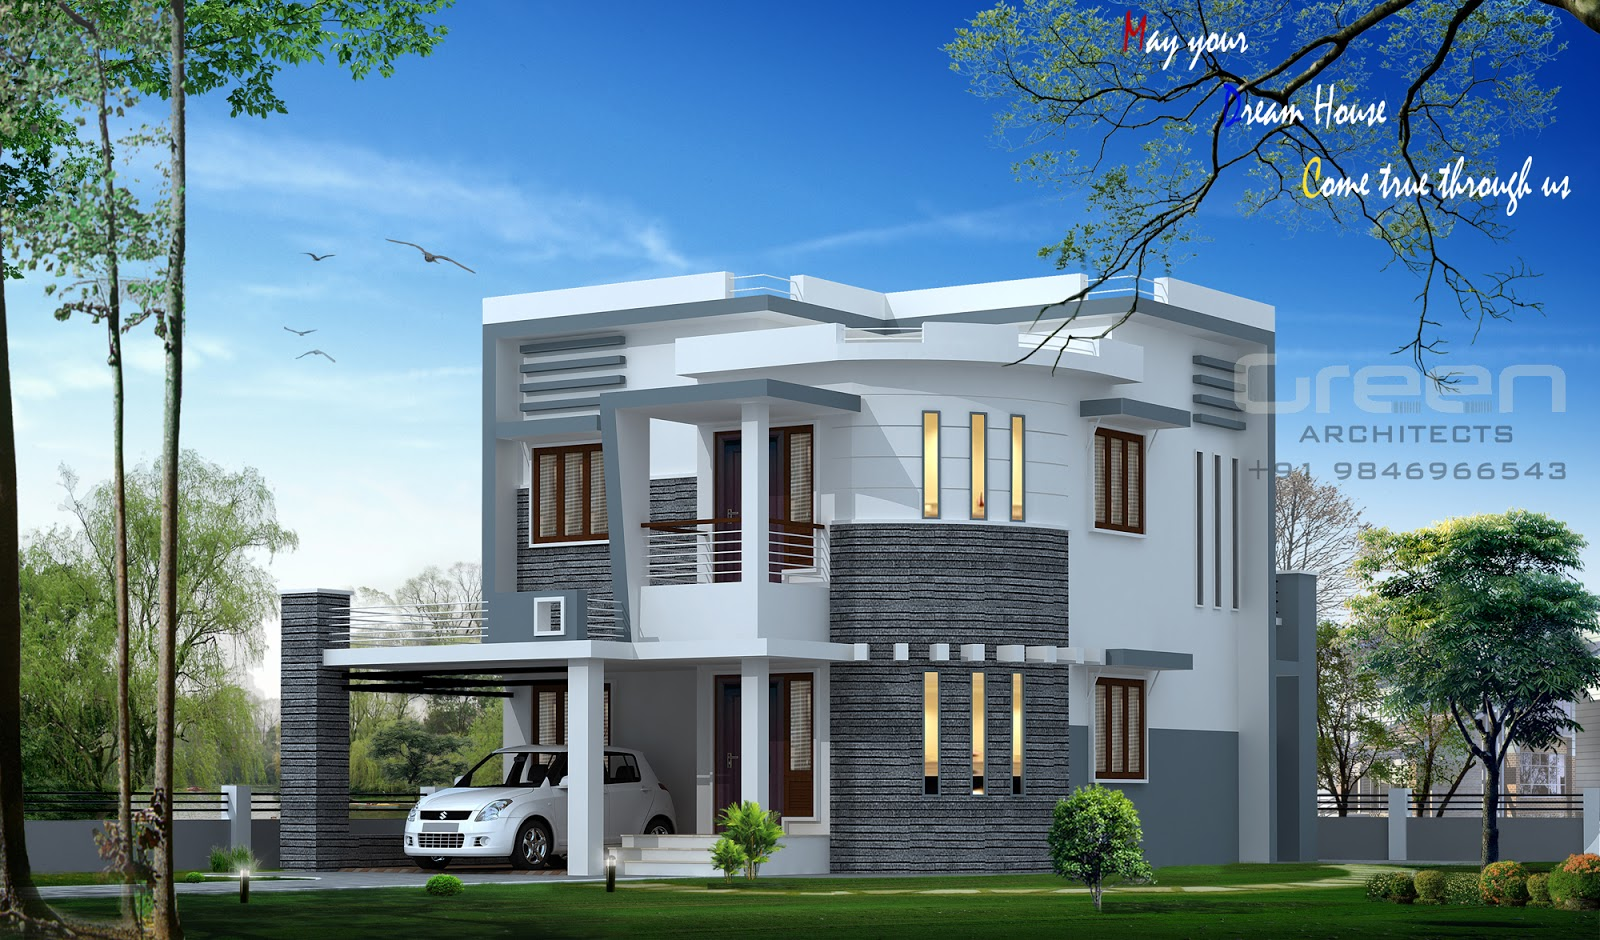 3 bedroom house beautiful 3 bedroom house design southern houses 3 bedroom 10027